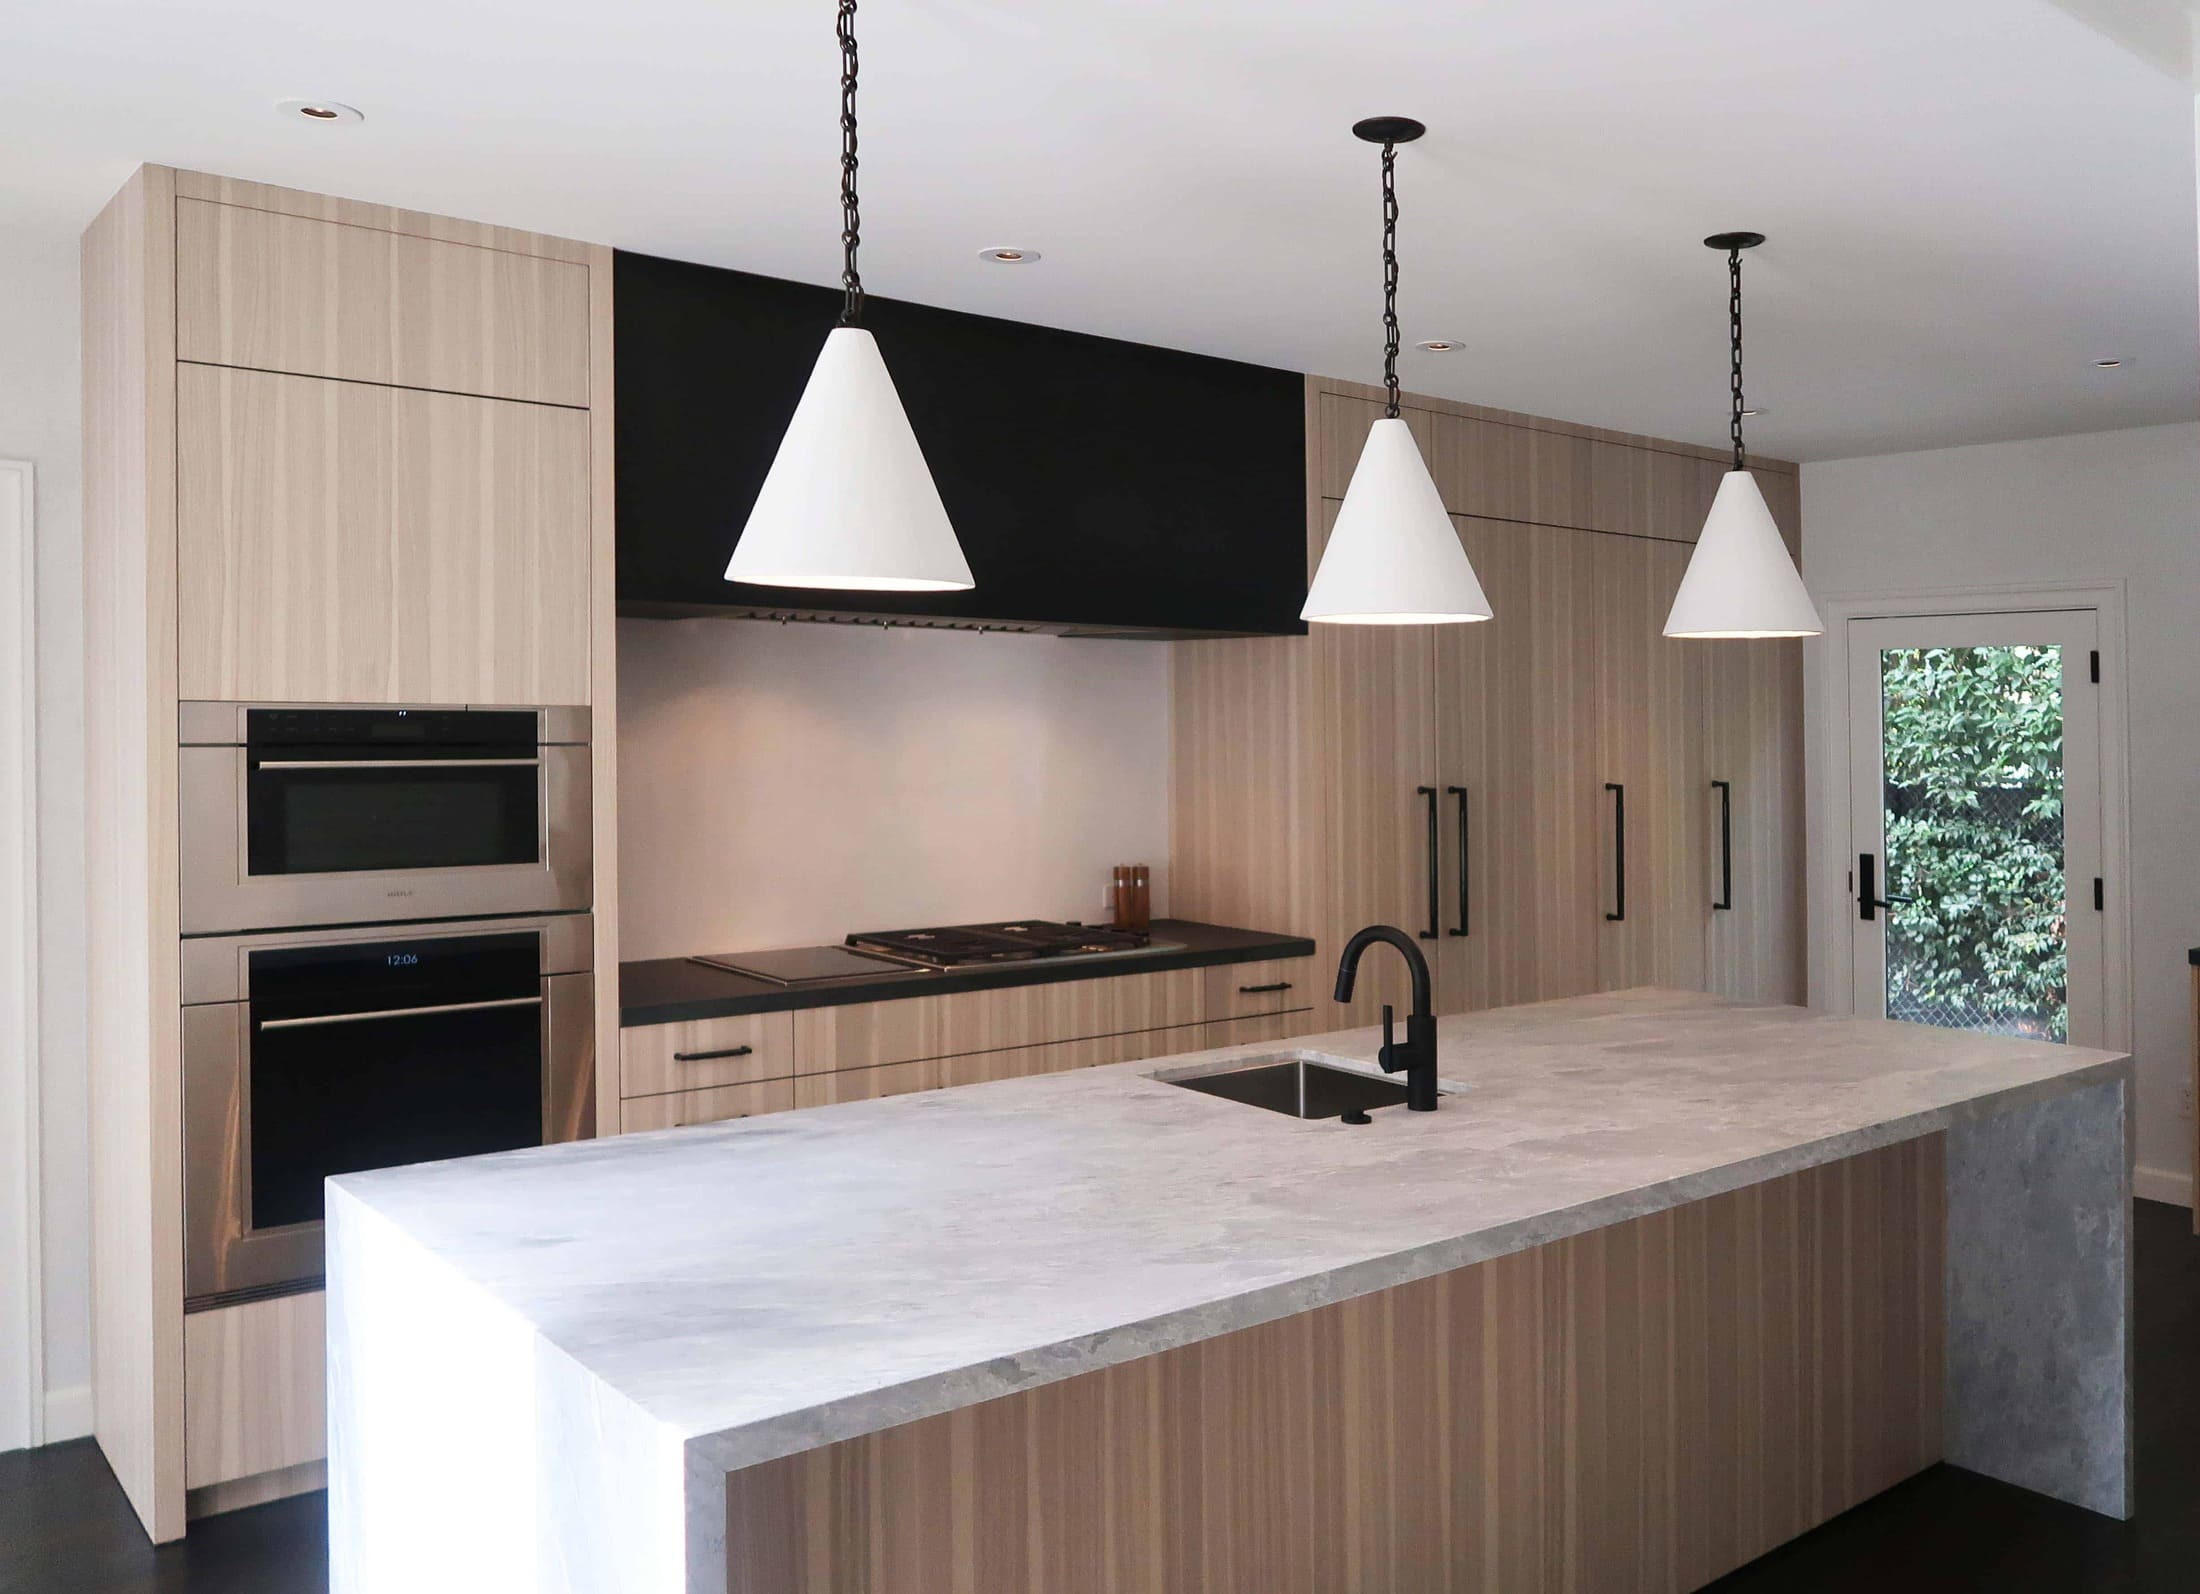 Project: 100-Year-Old Home Gets a Modern Kitchen with Traditional Touches